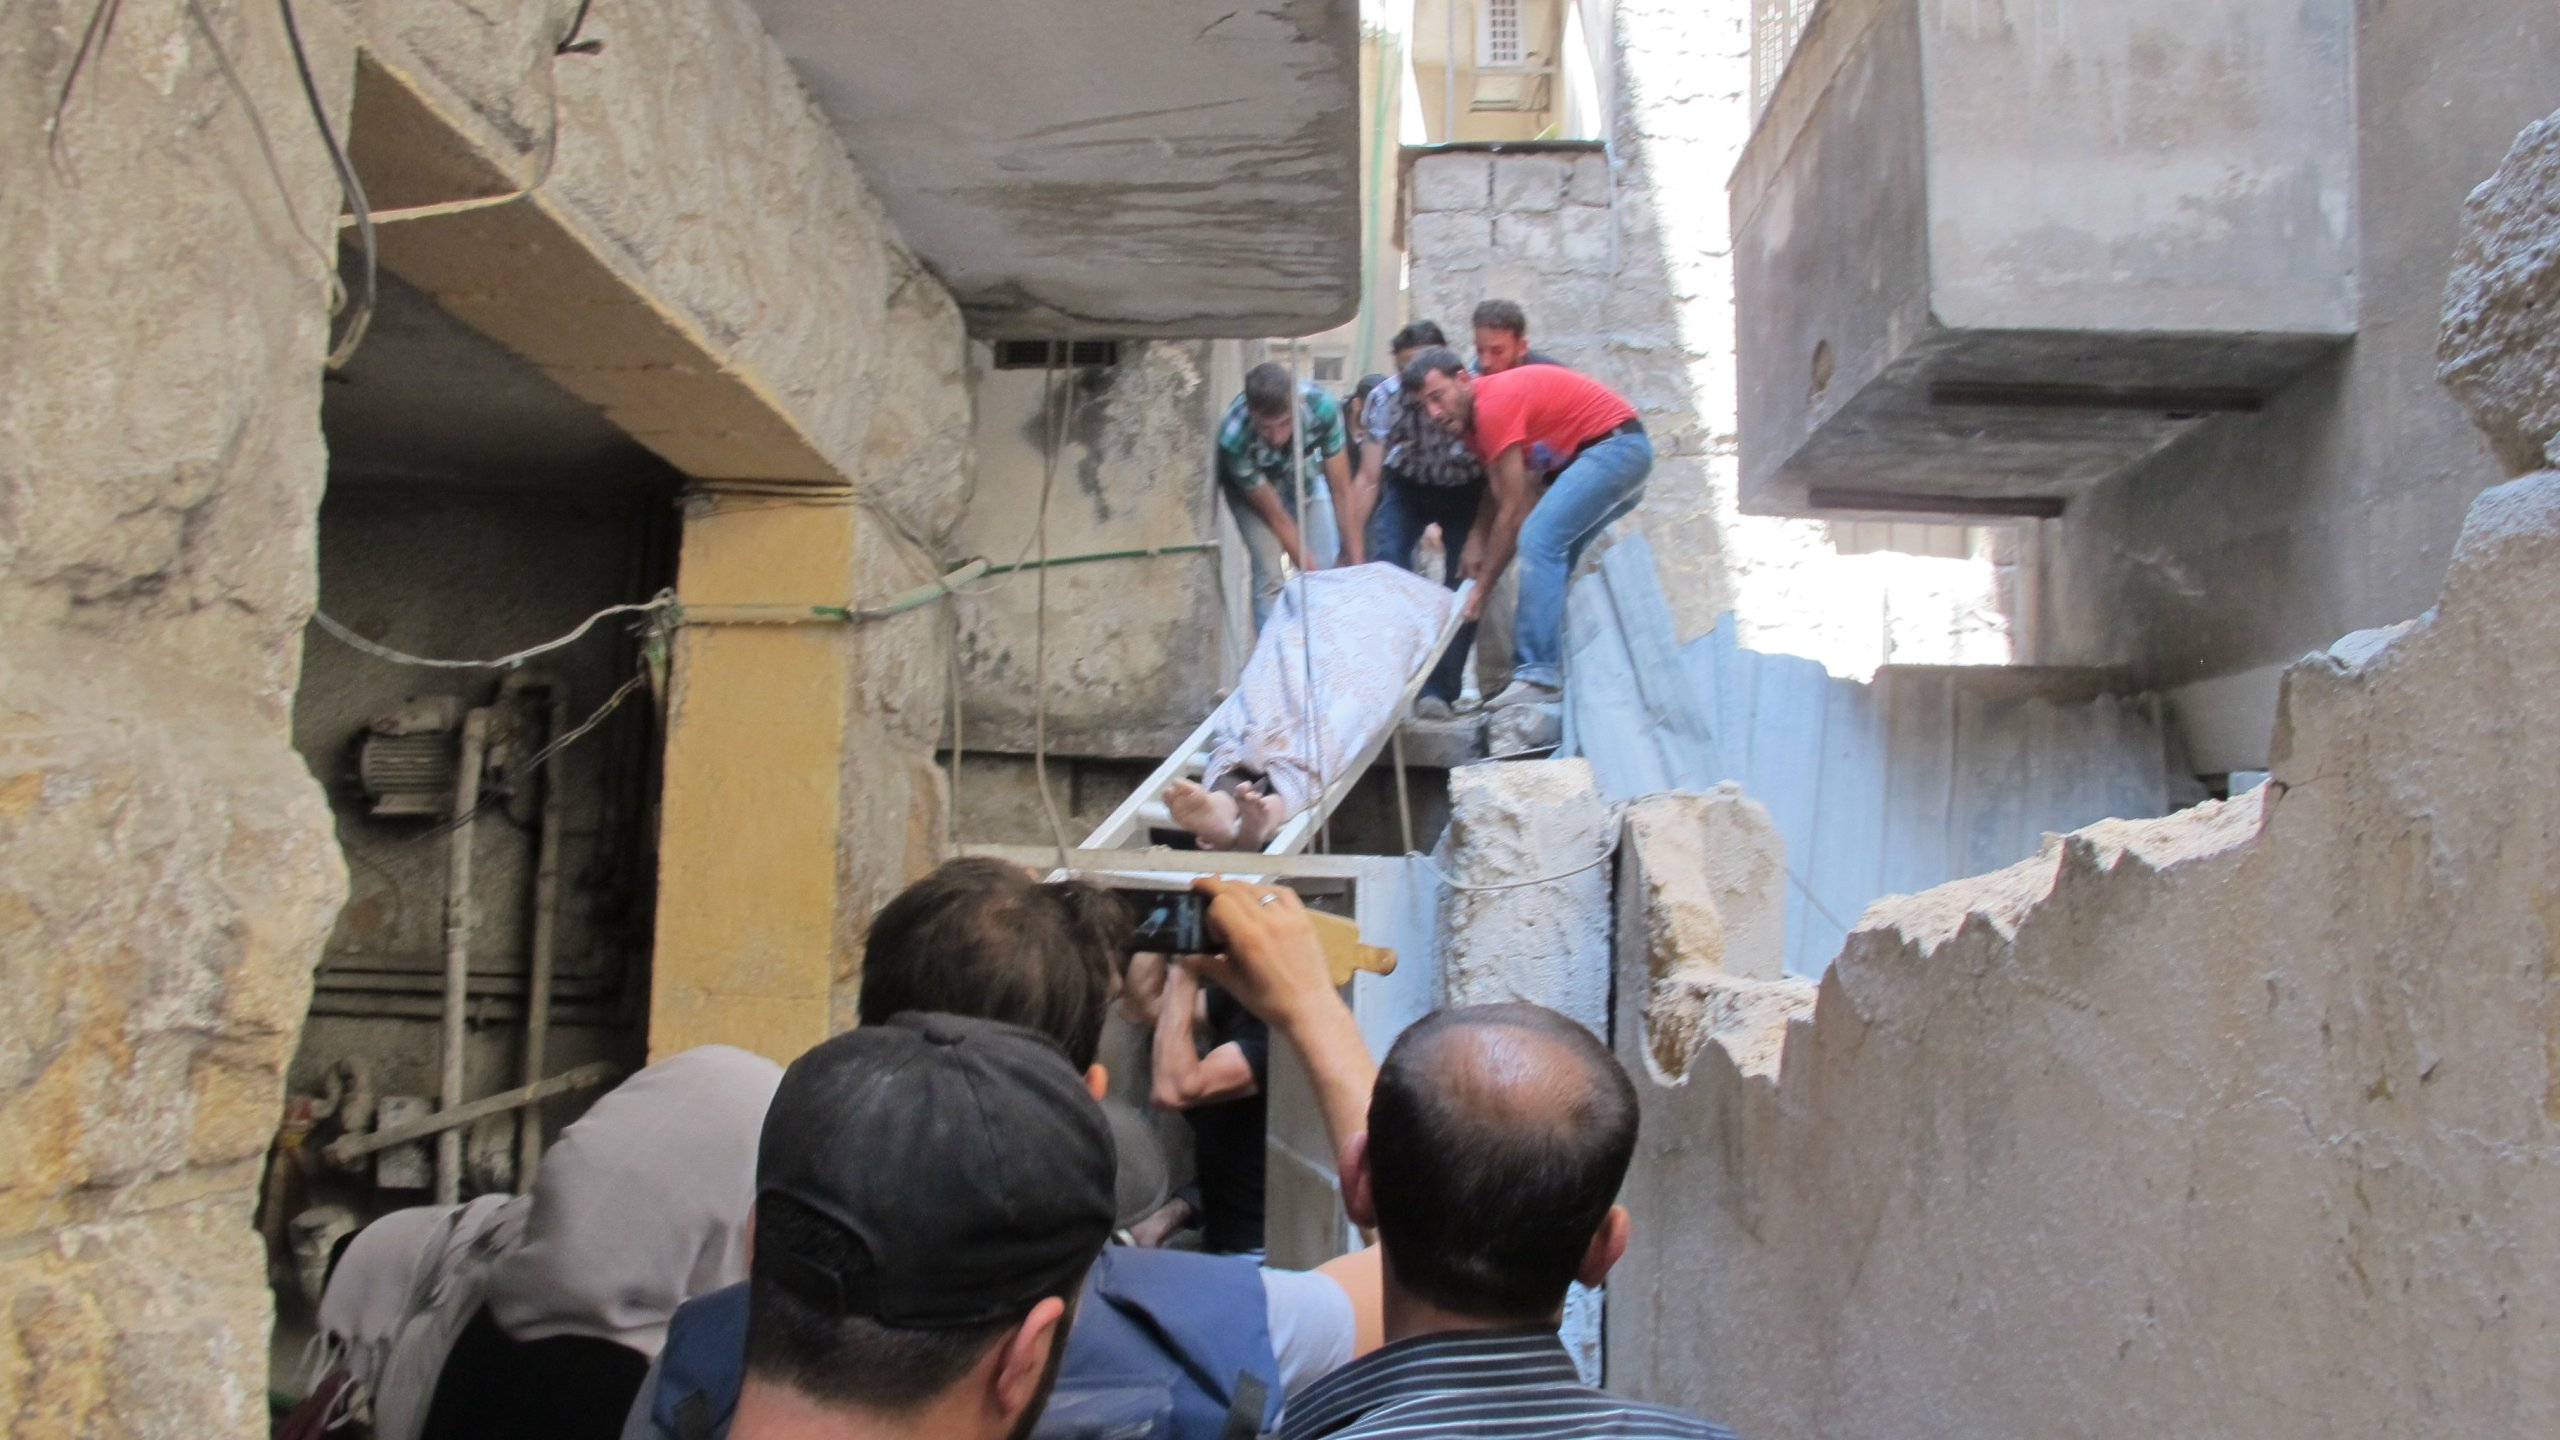 Residents of Aleppo, Syria carry the body a man shot dead by a sniper in front of his house. (Credit: CNN)